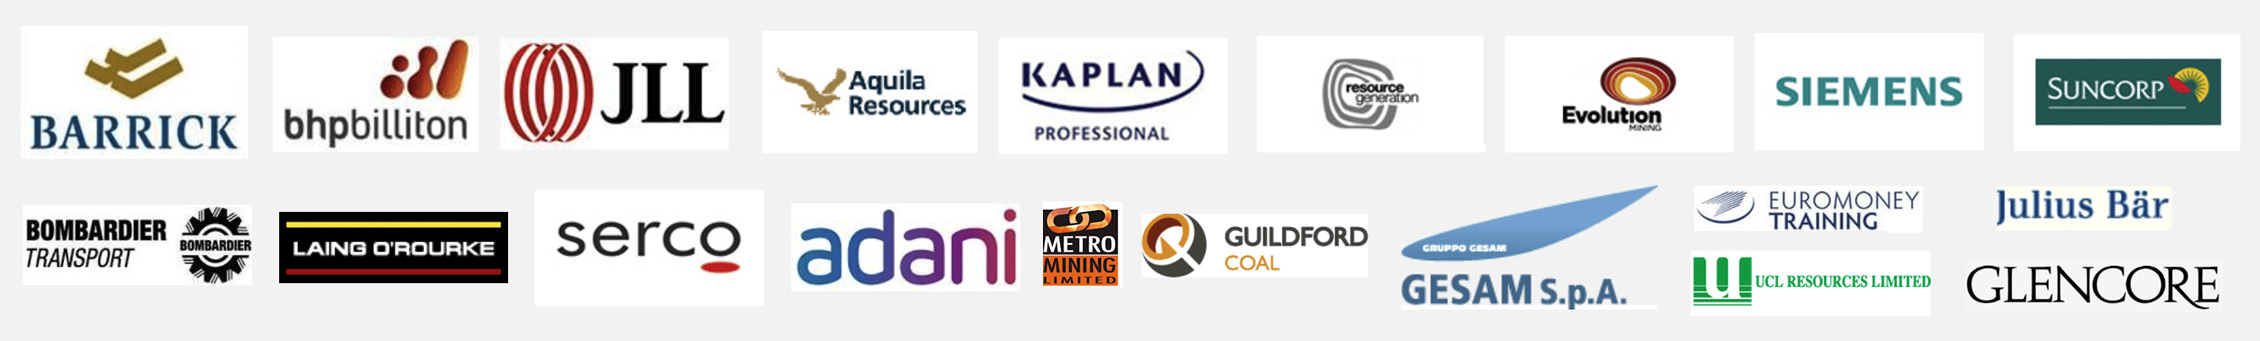 Past clients that we have assisted such as BHP and Adani and Serco